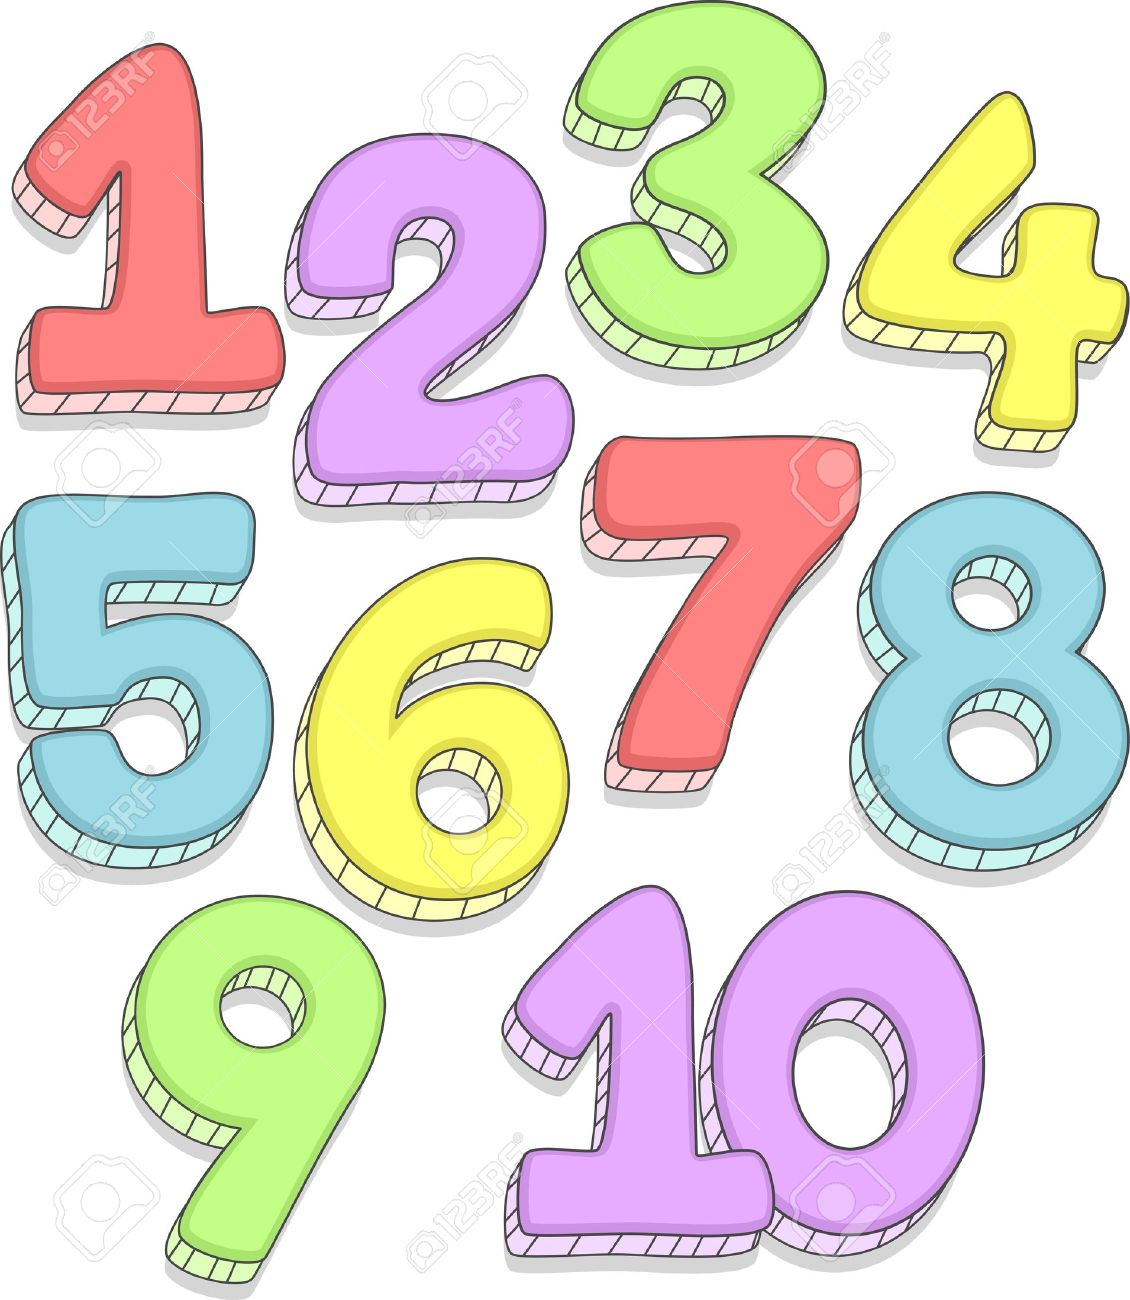 Number clipart Panda Clipart Clipart Images Free